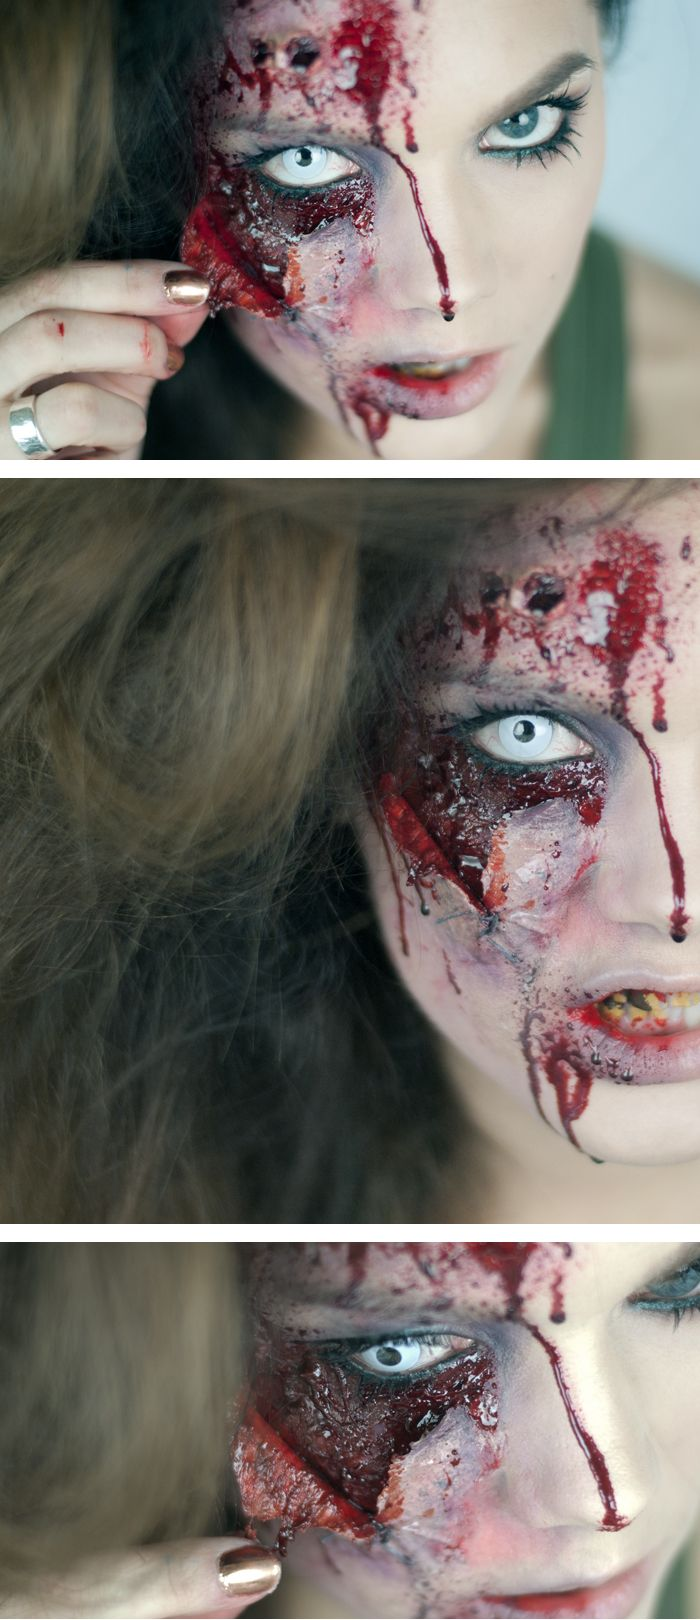 Love this pealed skin effect. To begin with it almost appears as though the model has been injured or in an accident then in the second image it appears as though she may be a daemon or vampire. This is a look i will be creating within my group image of a zombie apocalypse.